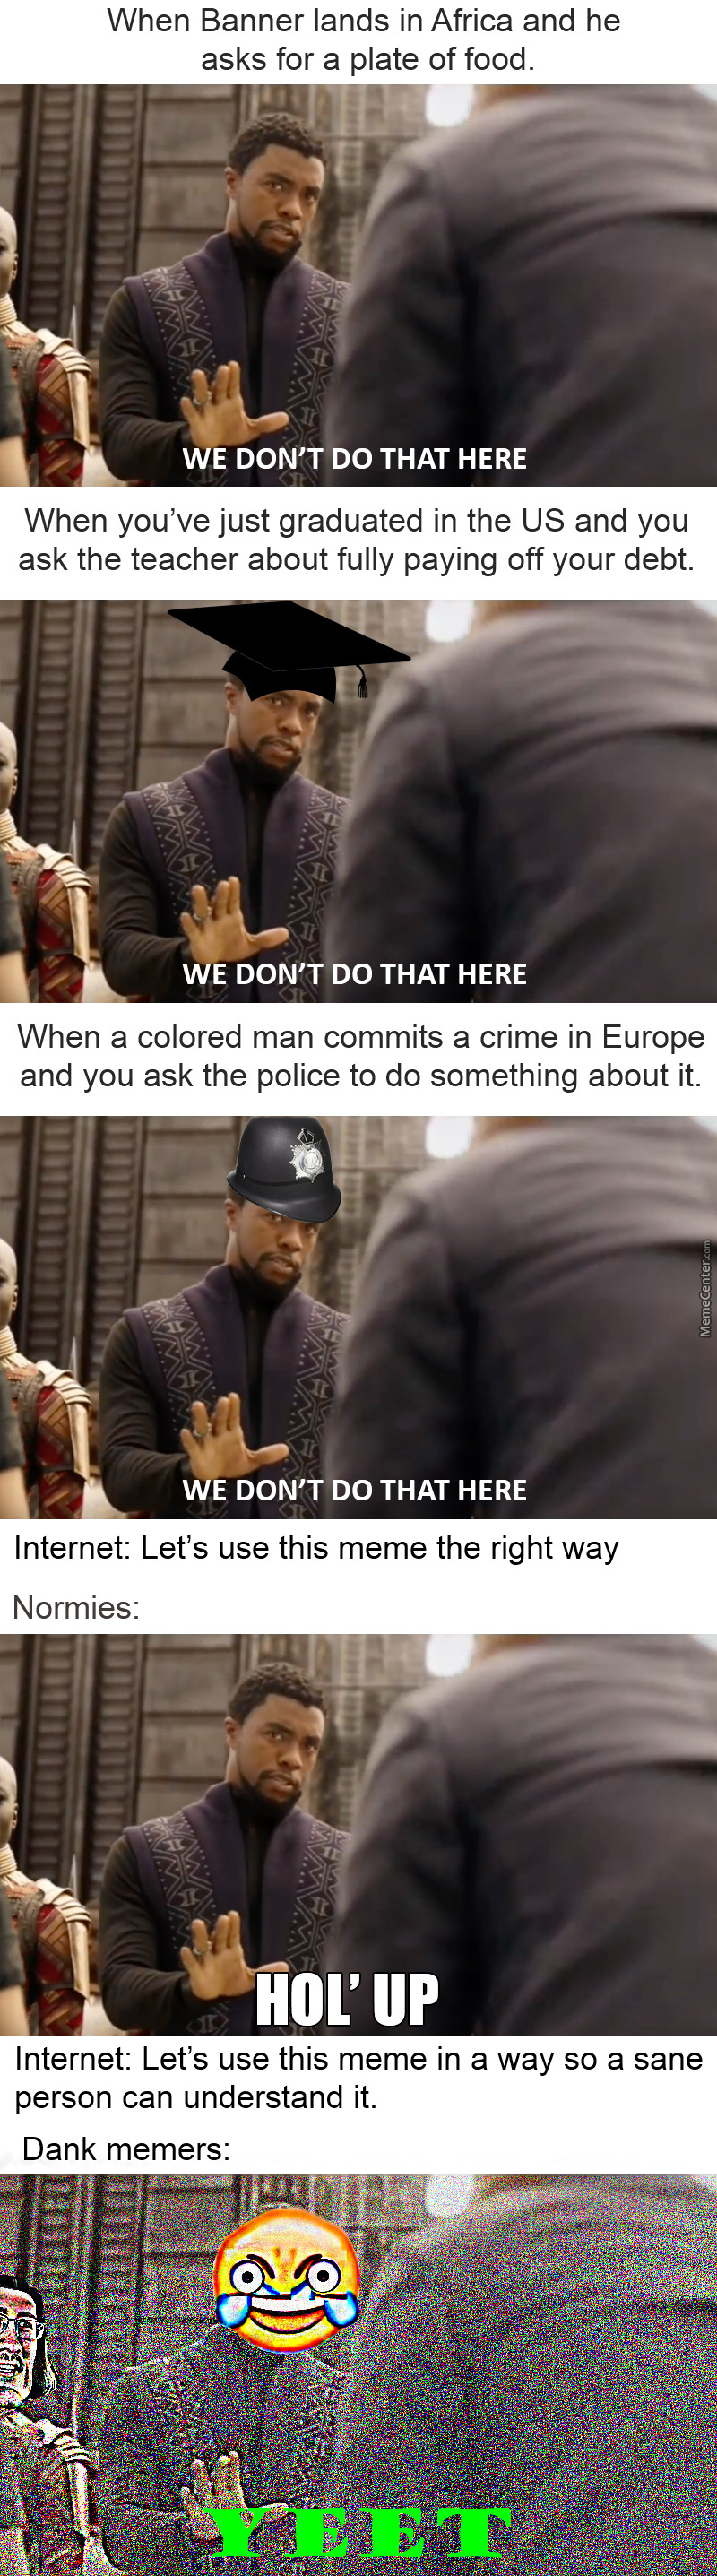 The Black Panther Meme Format Hasn't Gone Unnoticed Here